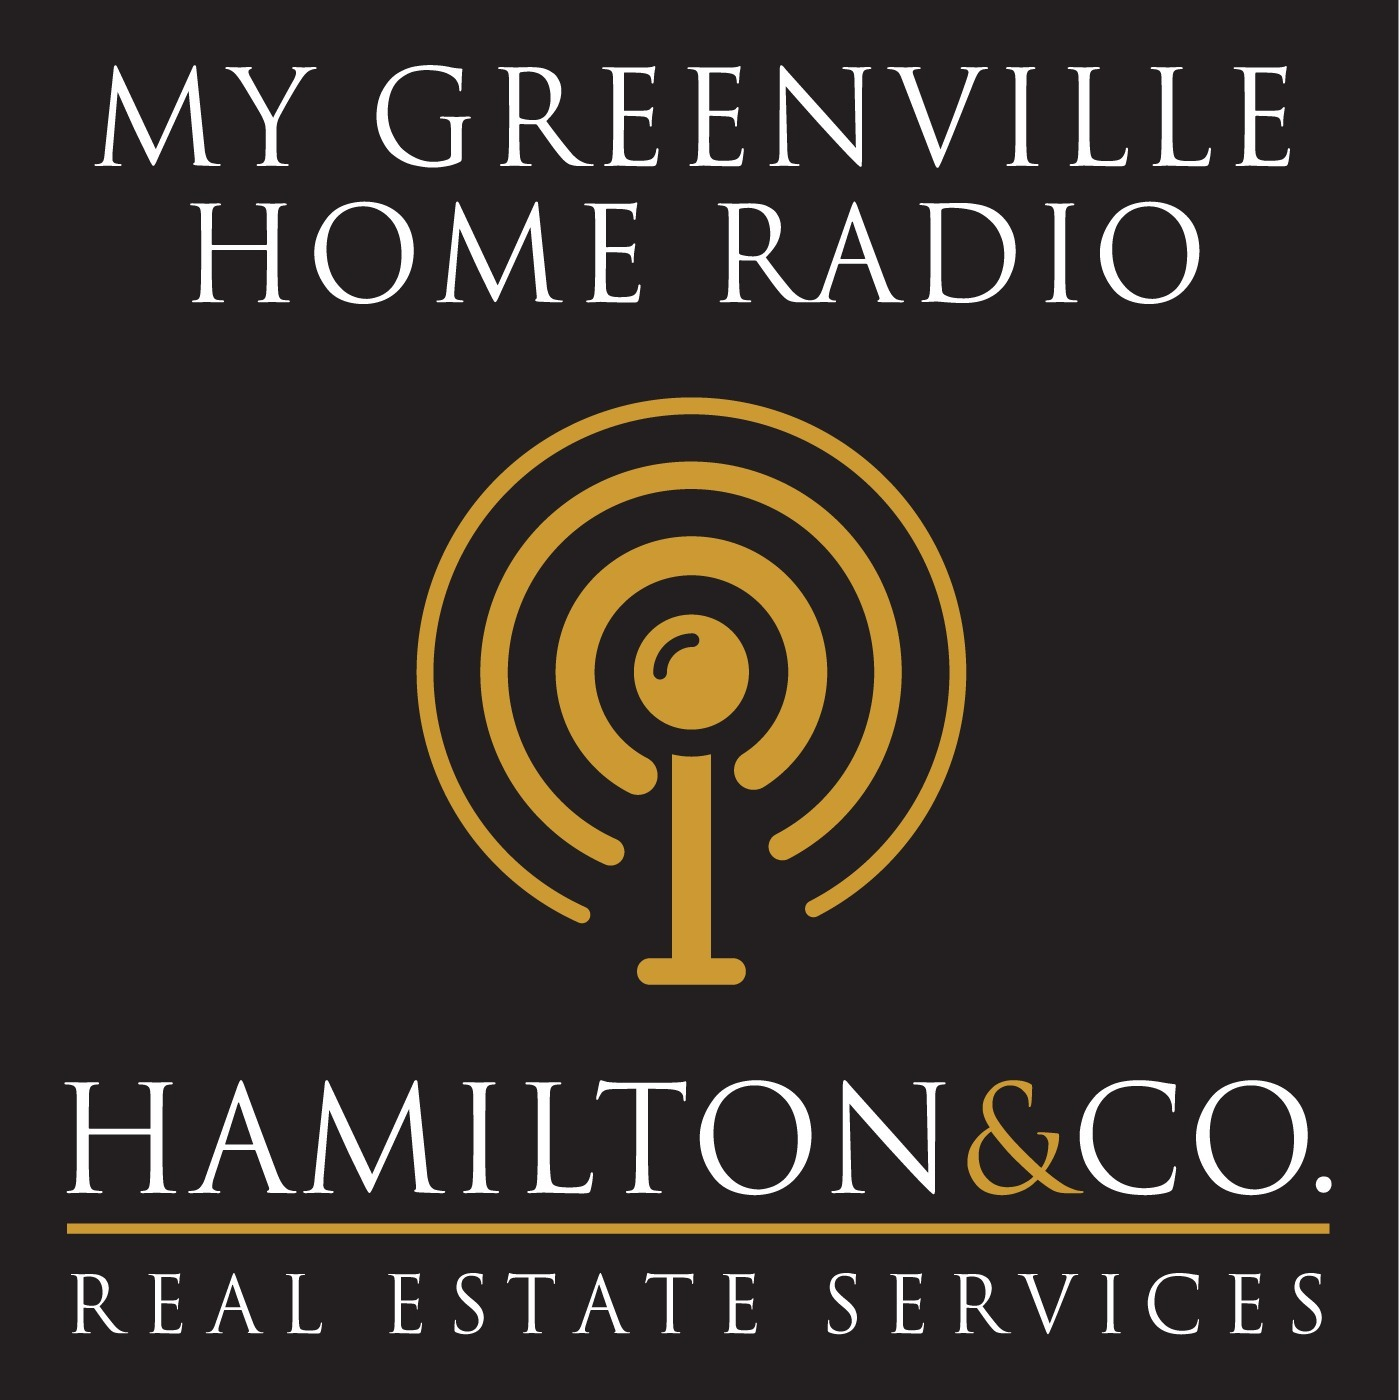 My Greenville Home Radio